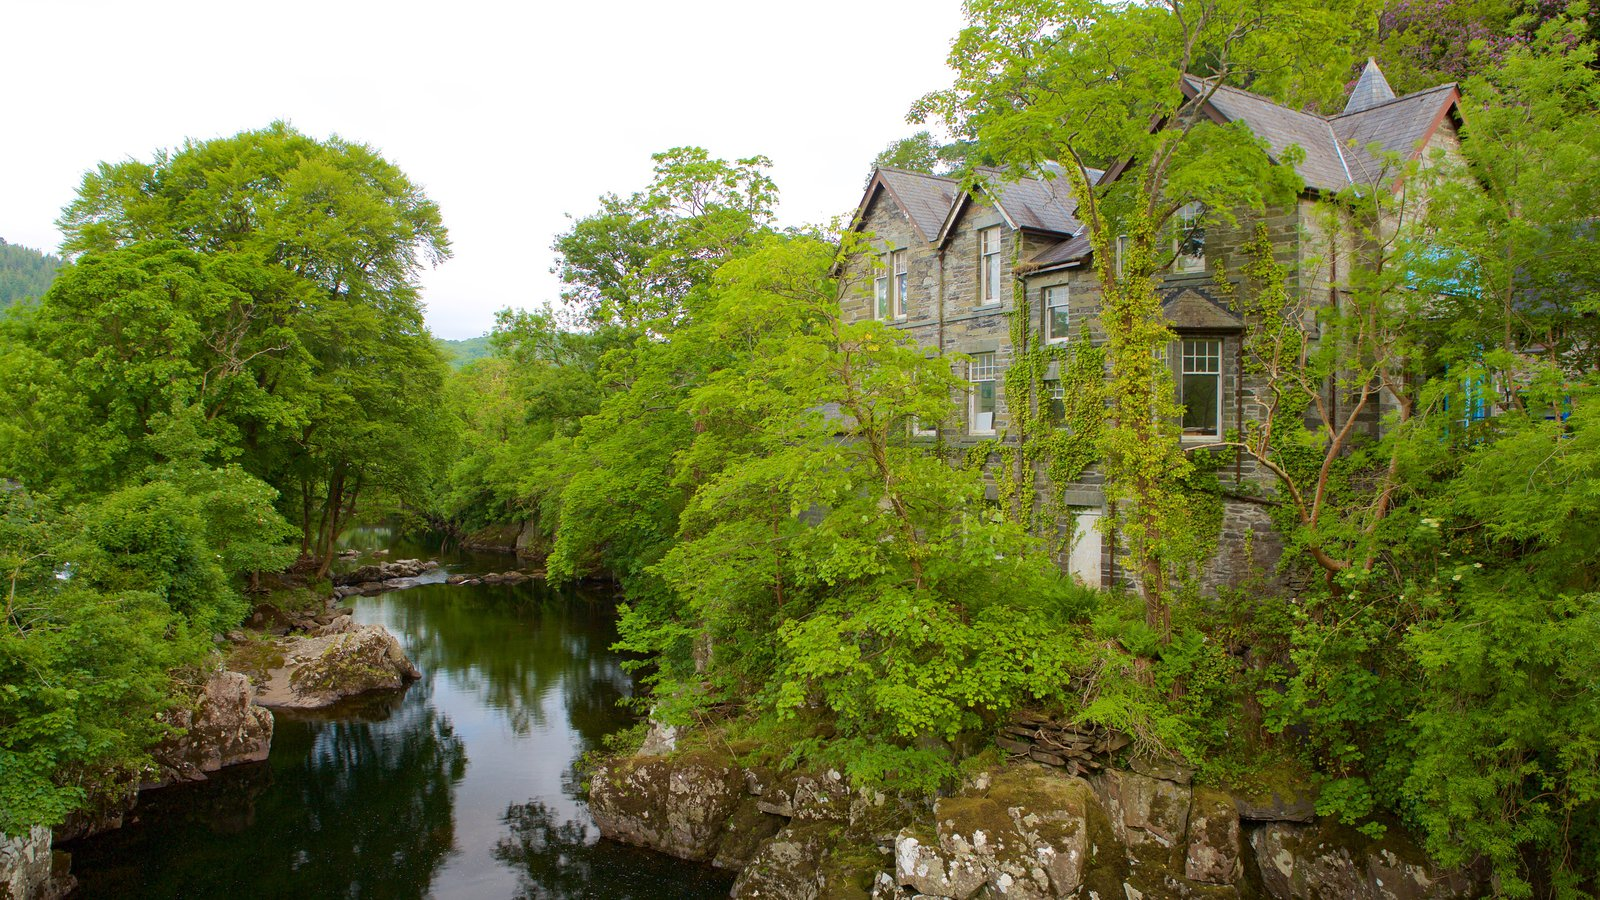 Betws-Y-Coed showing forest scenes, a house and a river or creek